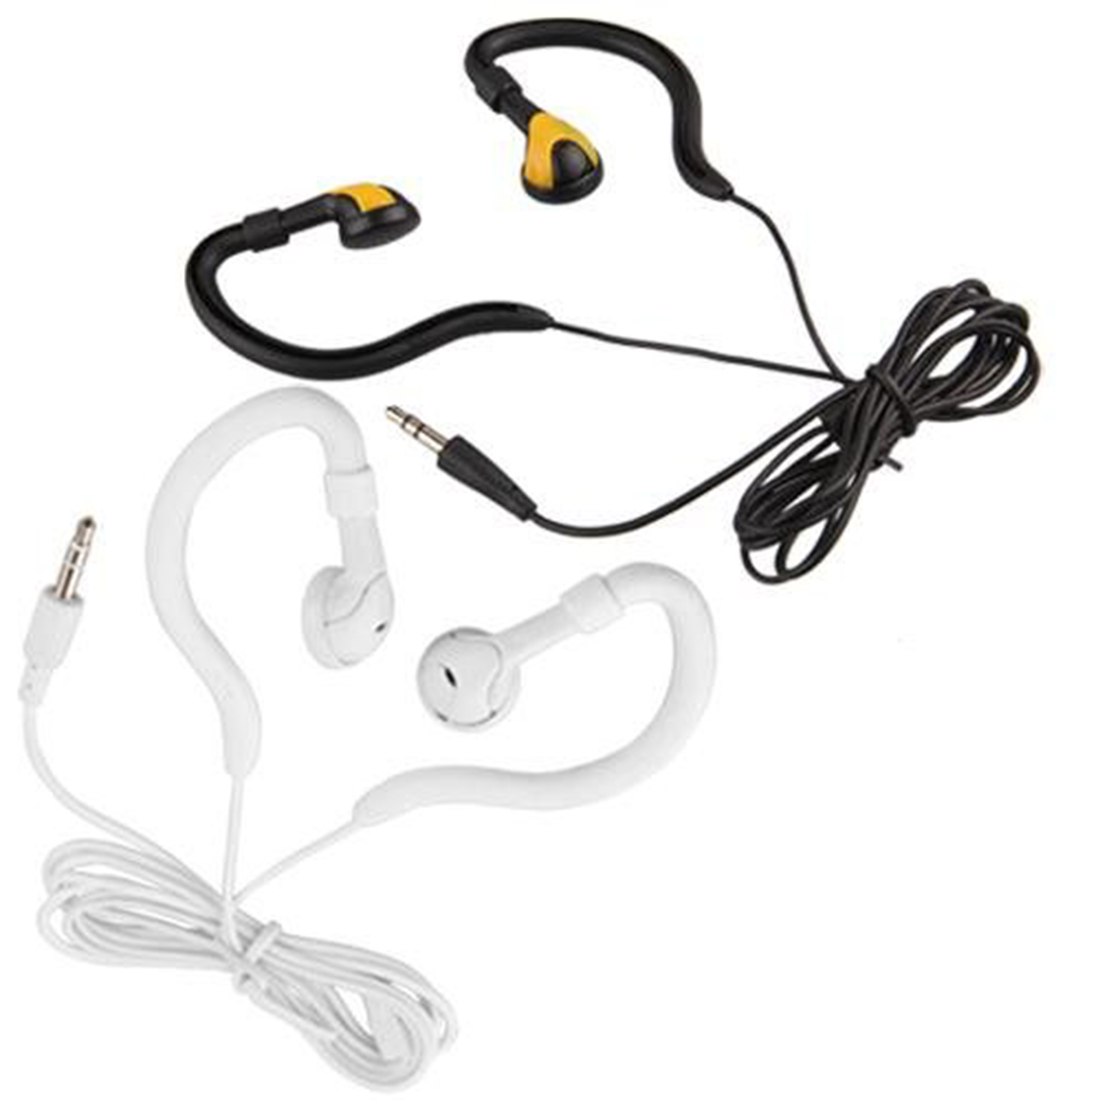 Running Sports Ear Hook 3.5mm Earphone Headphones Headset for MP3 MP4 iPhone 2 Colors Free Shipping